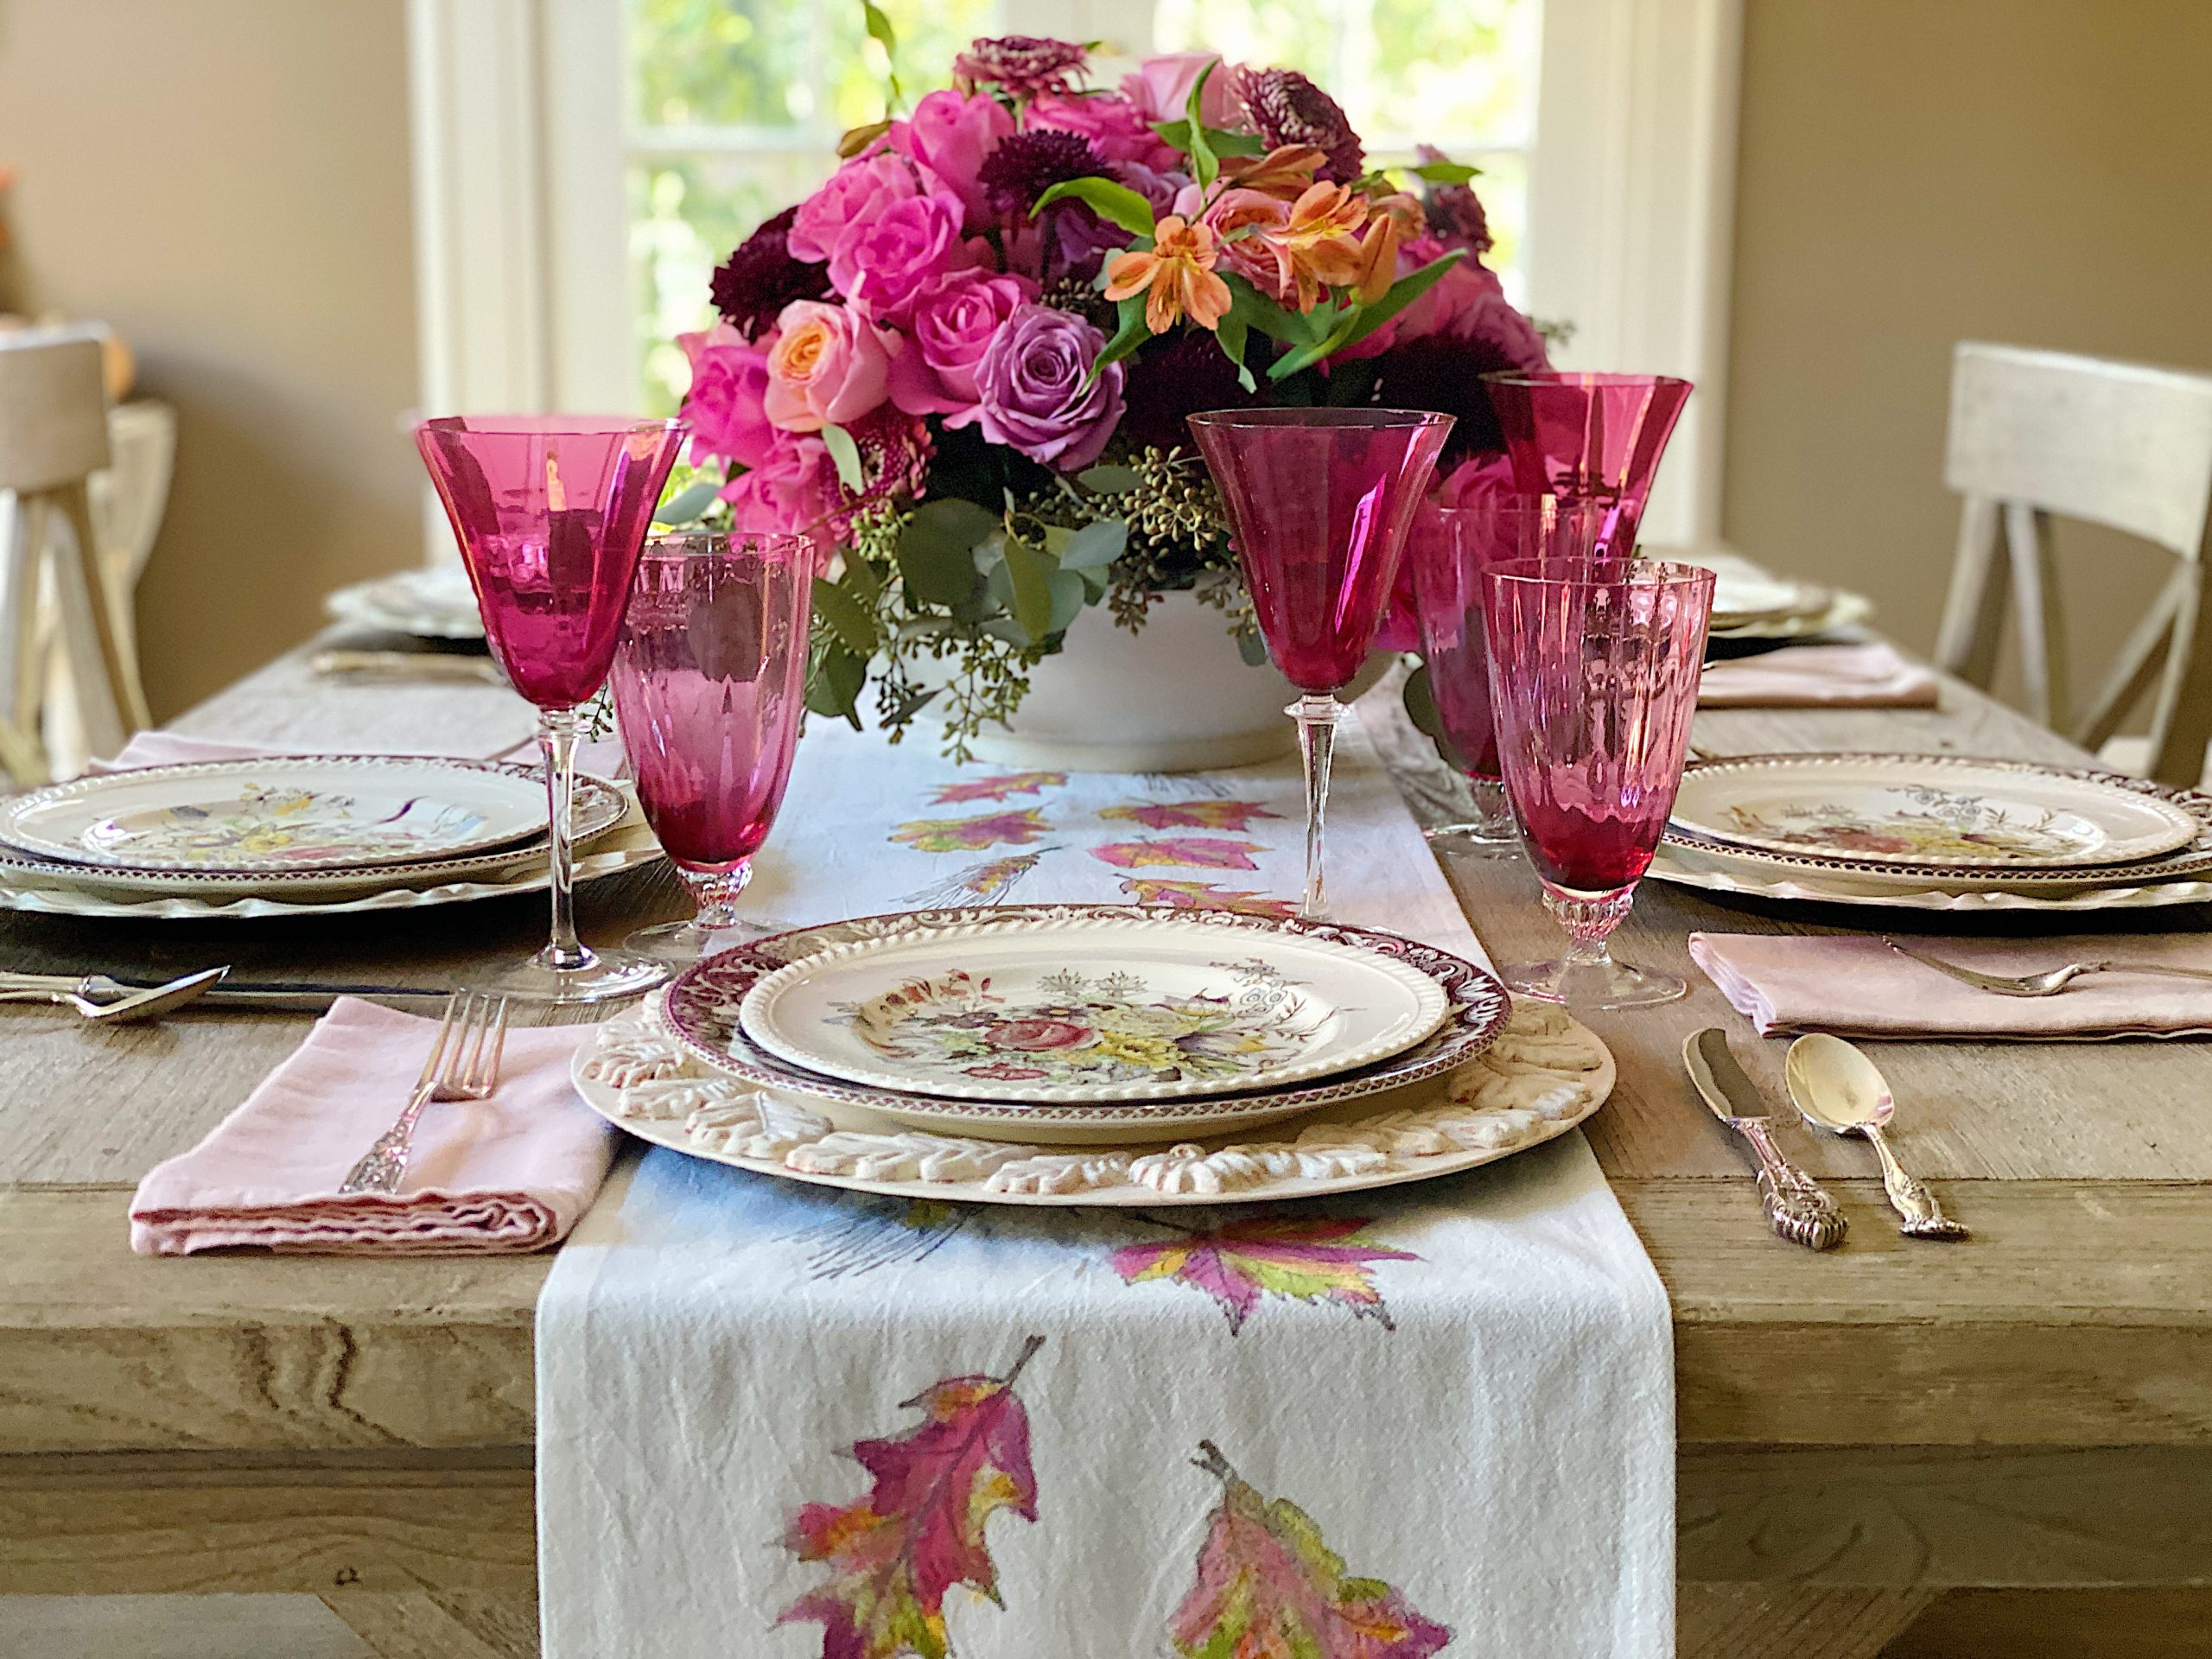 A Tablescape in Thanksgiving Colors 6